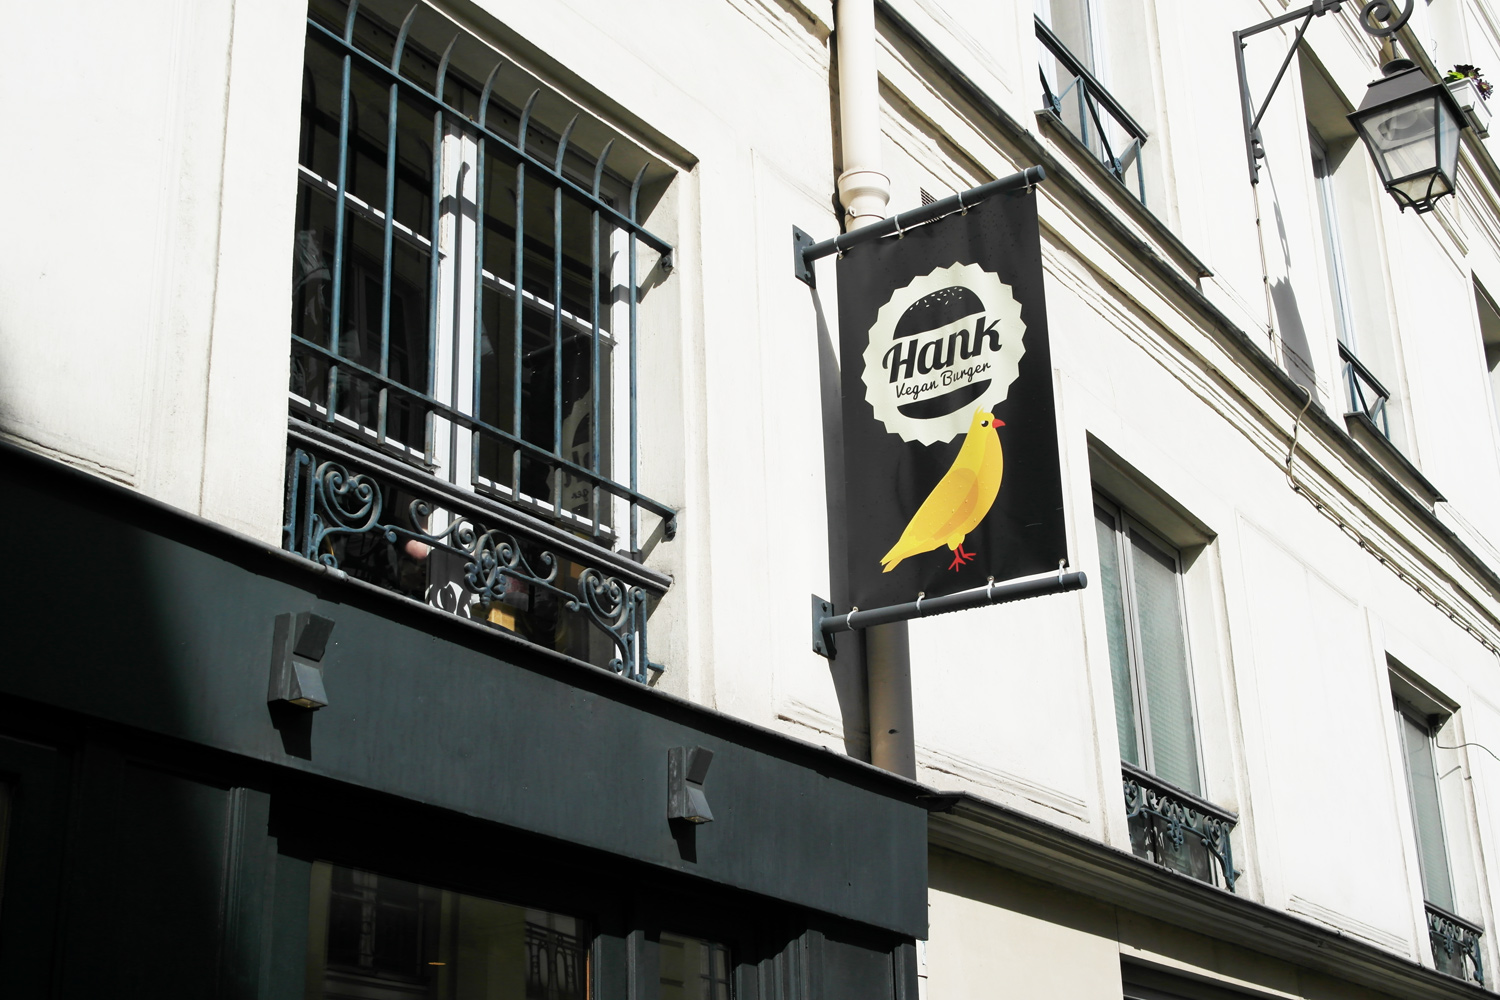 la-coutch-blog-lifestyle-test-hank-vegan-burger-paris10